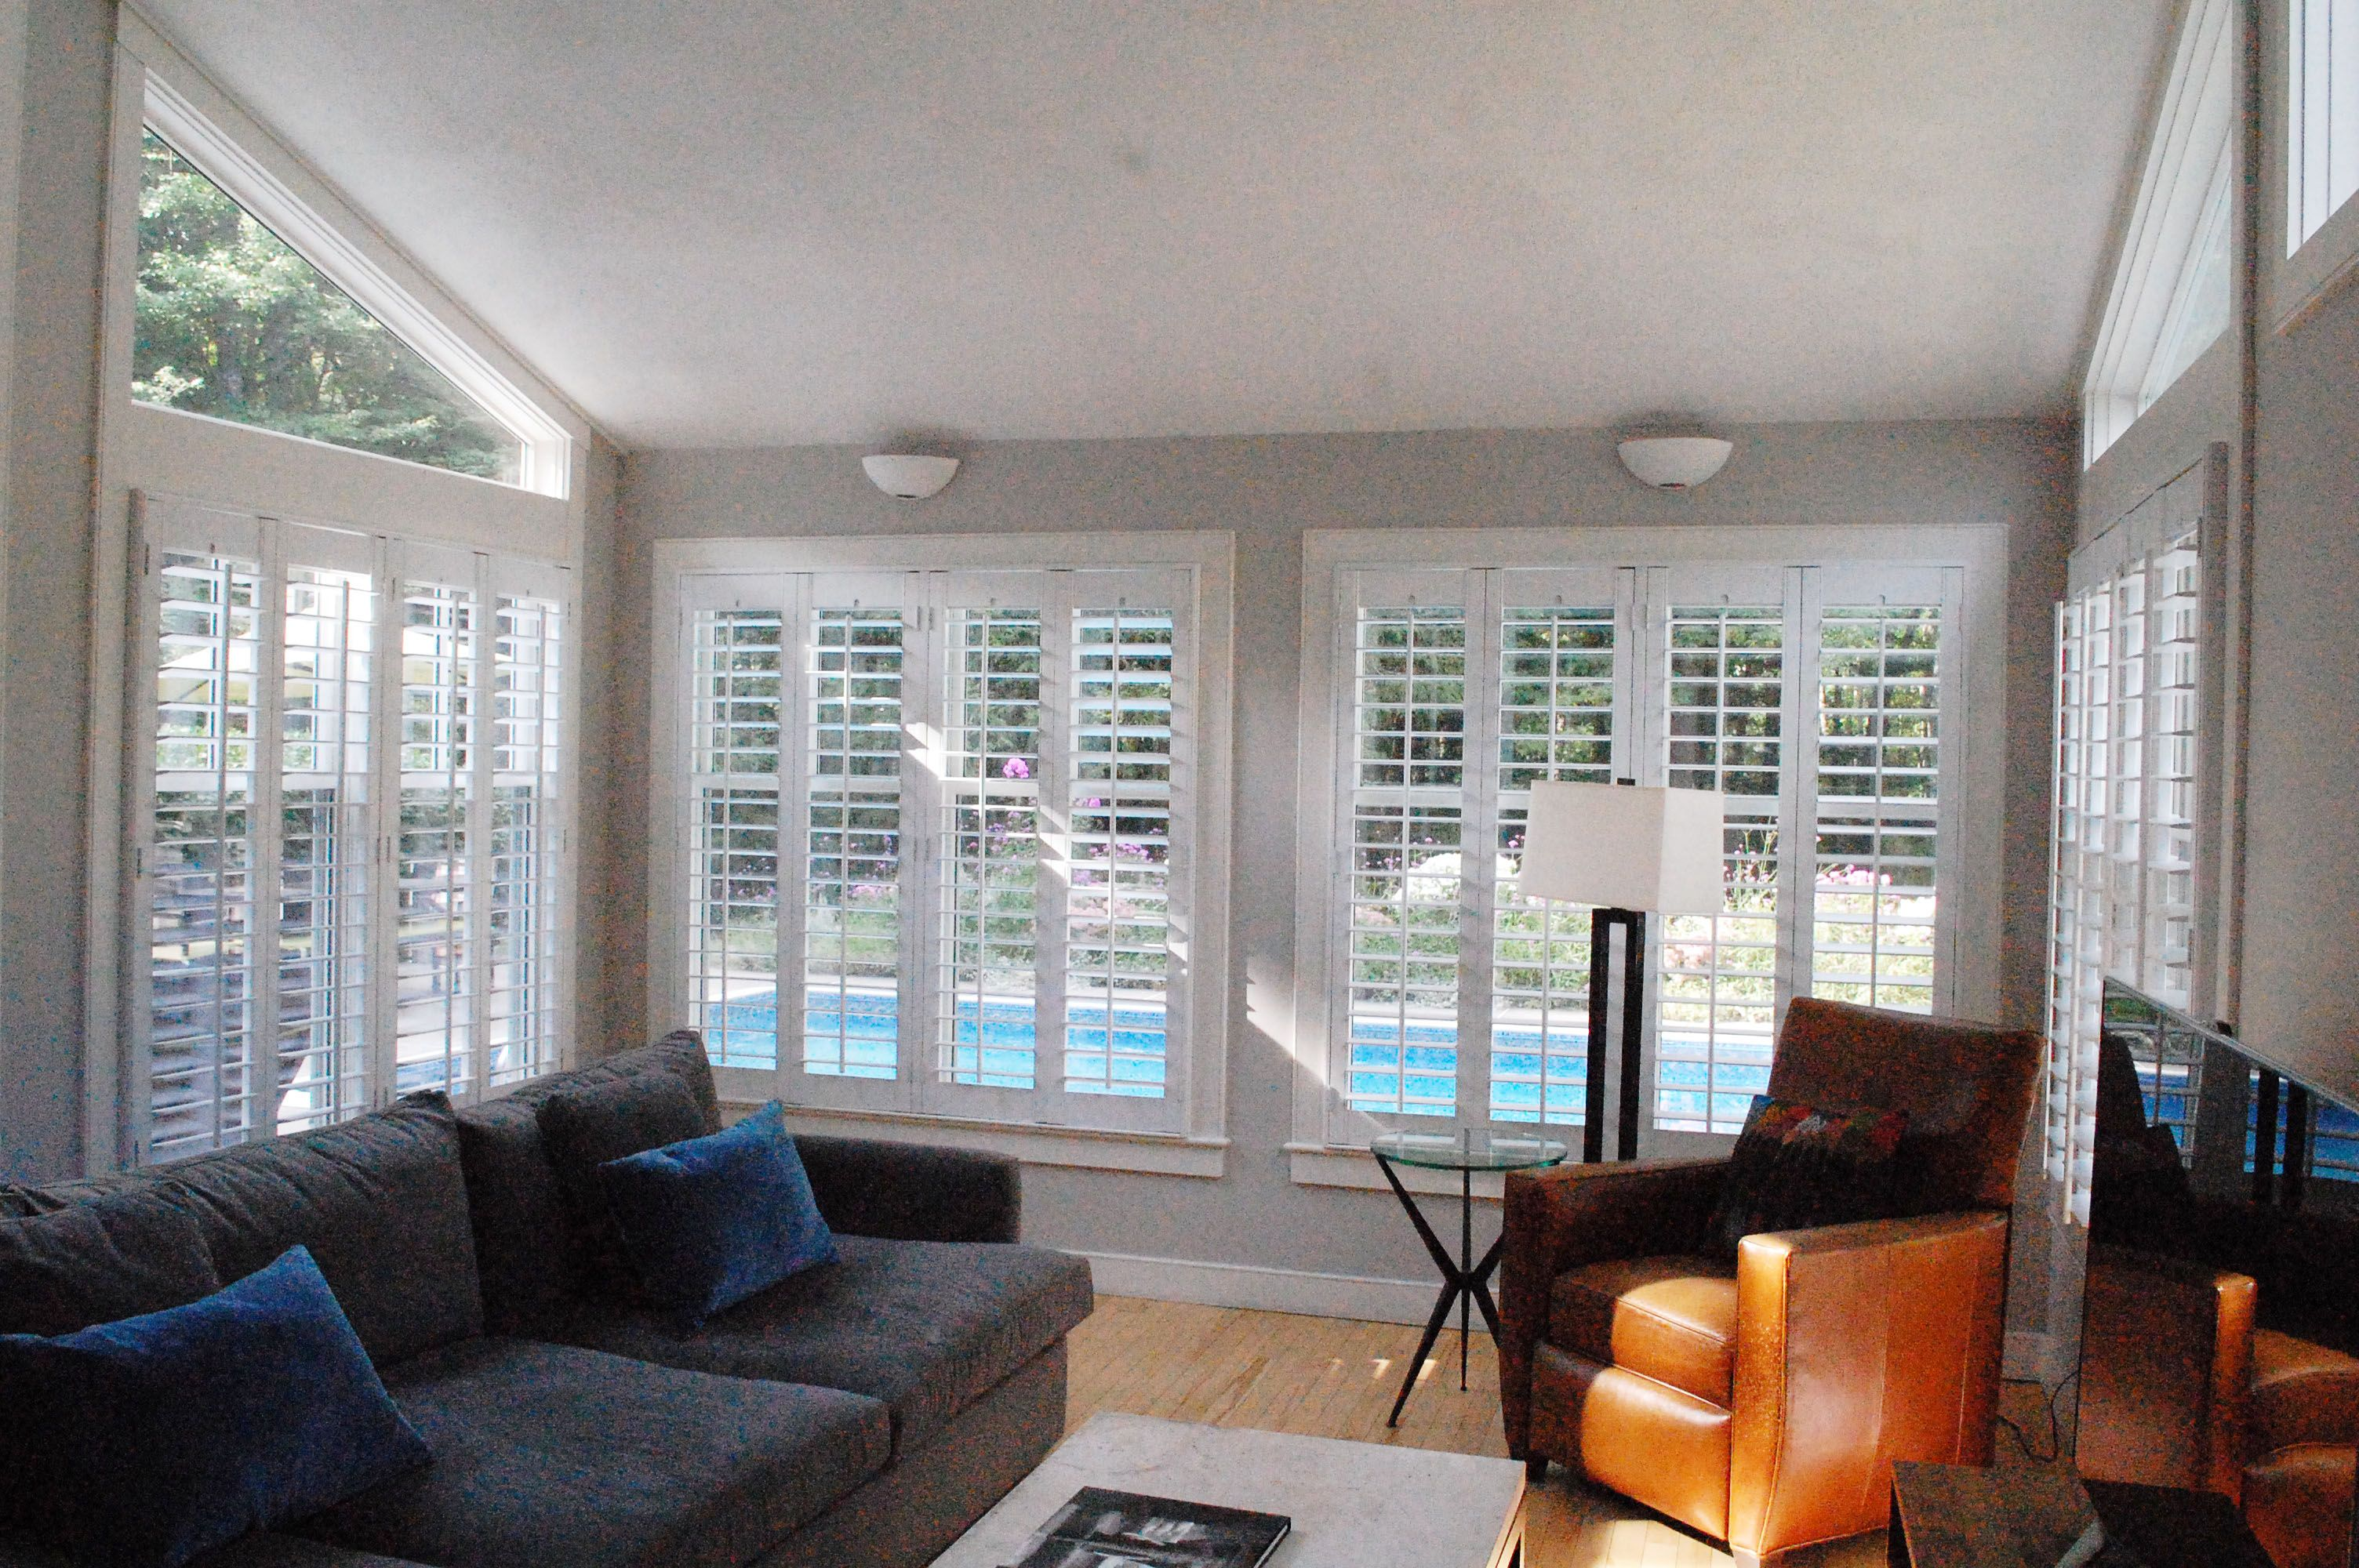 This Sunny Room Looks Great With Our Plantation Shutters! All The Light You  Need And What A Nice View Of The Pool!